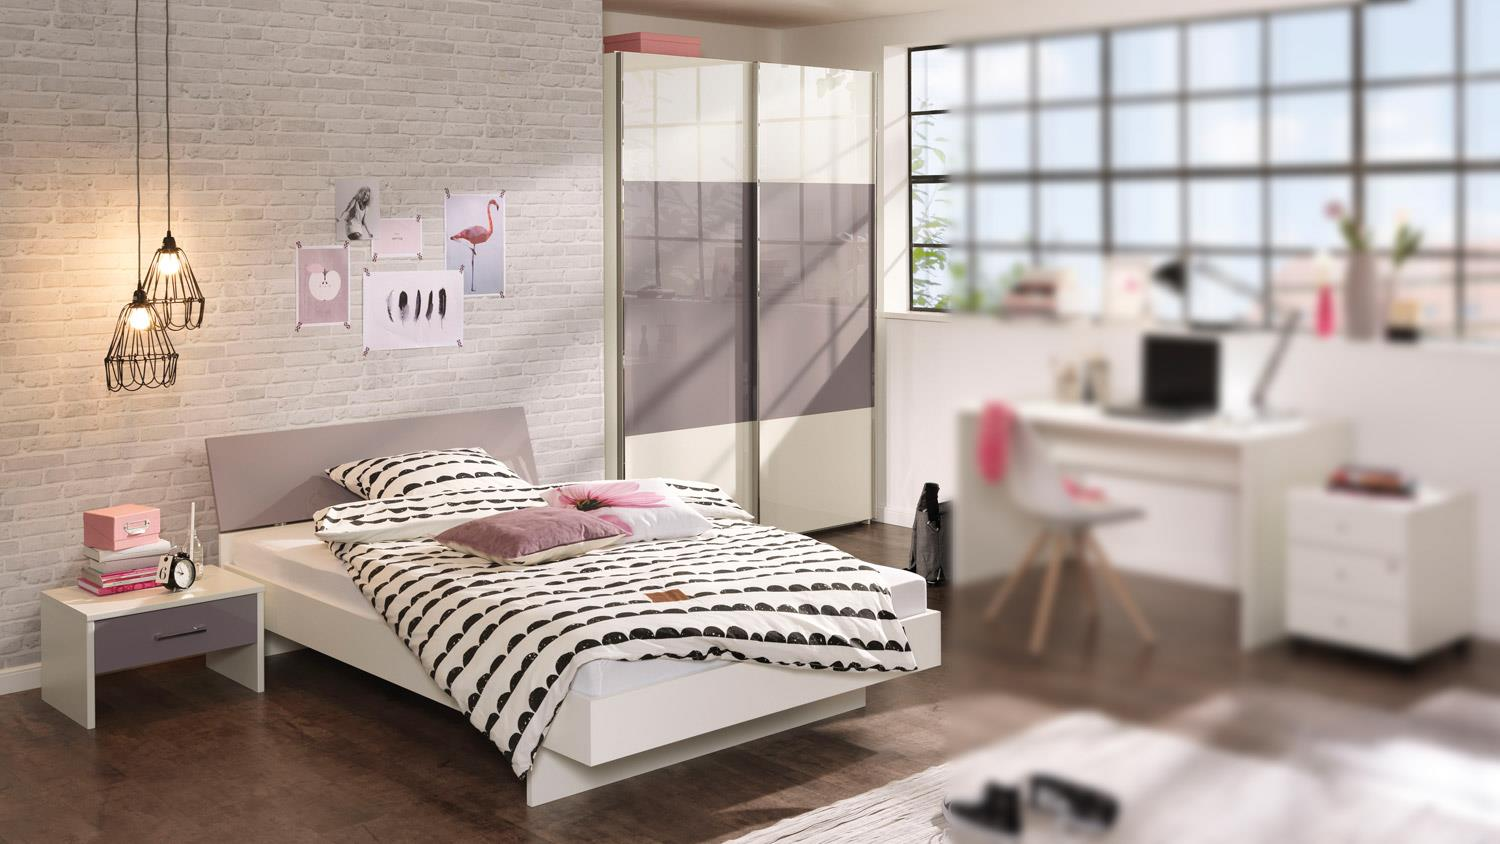 jugendzimmer set jugendwunder in lila grau wei hochglanz wellem bel. Black Bedroom Furniture Sets. Home Design Ideas